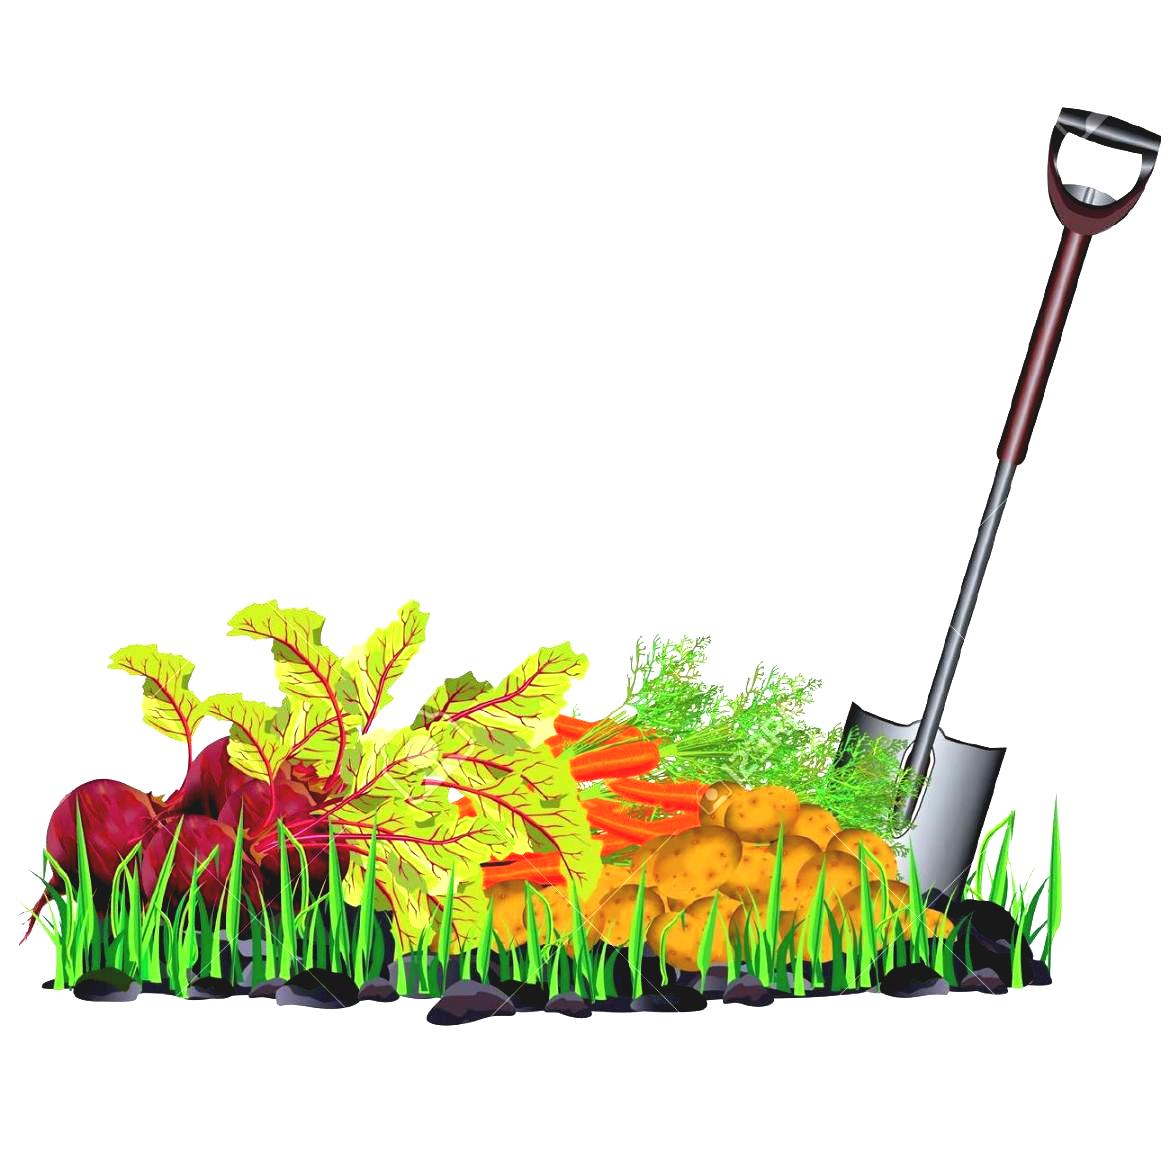 The Best Free Gardening Clipart Images. Download From 143